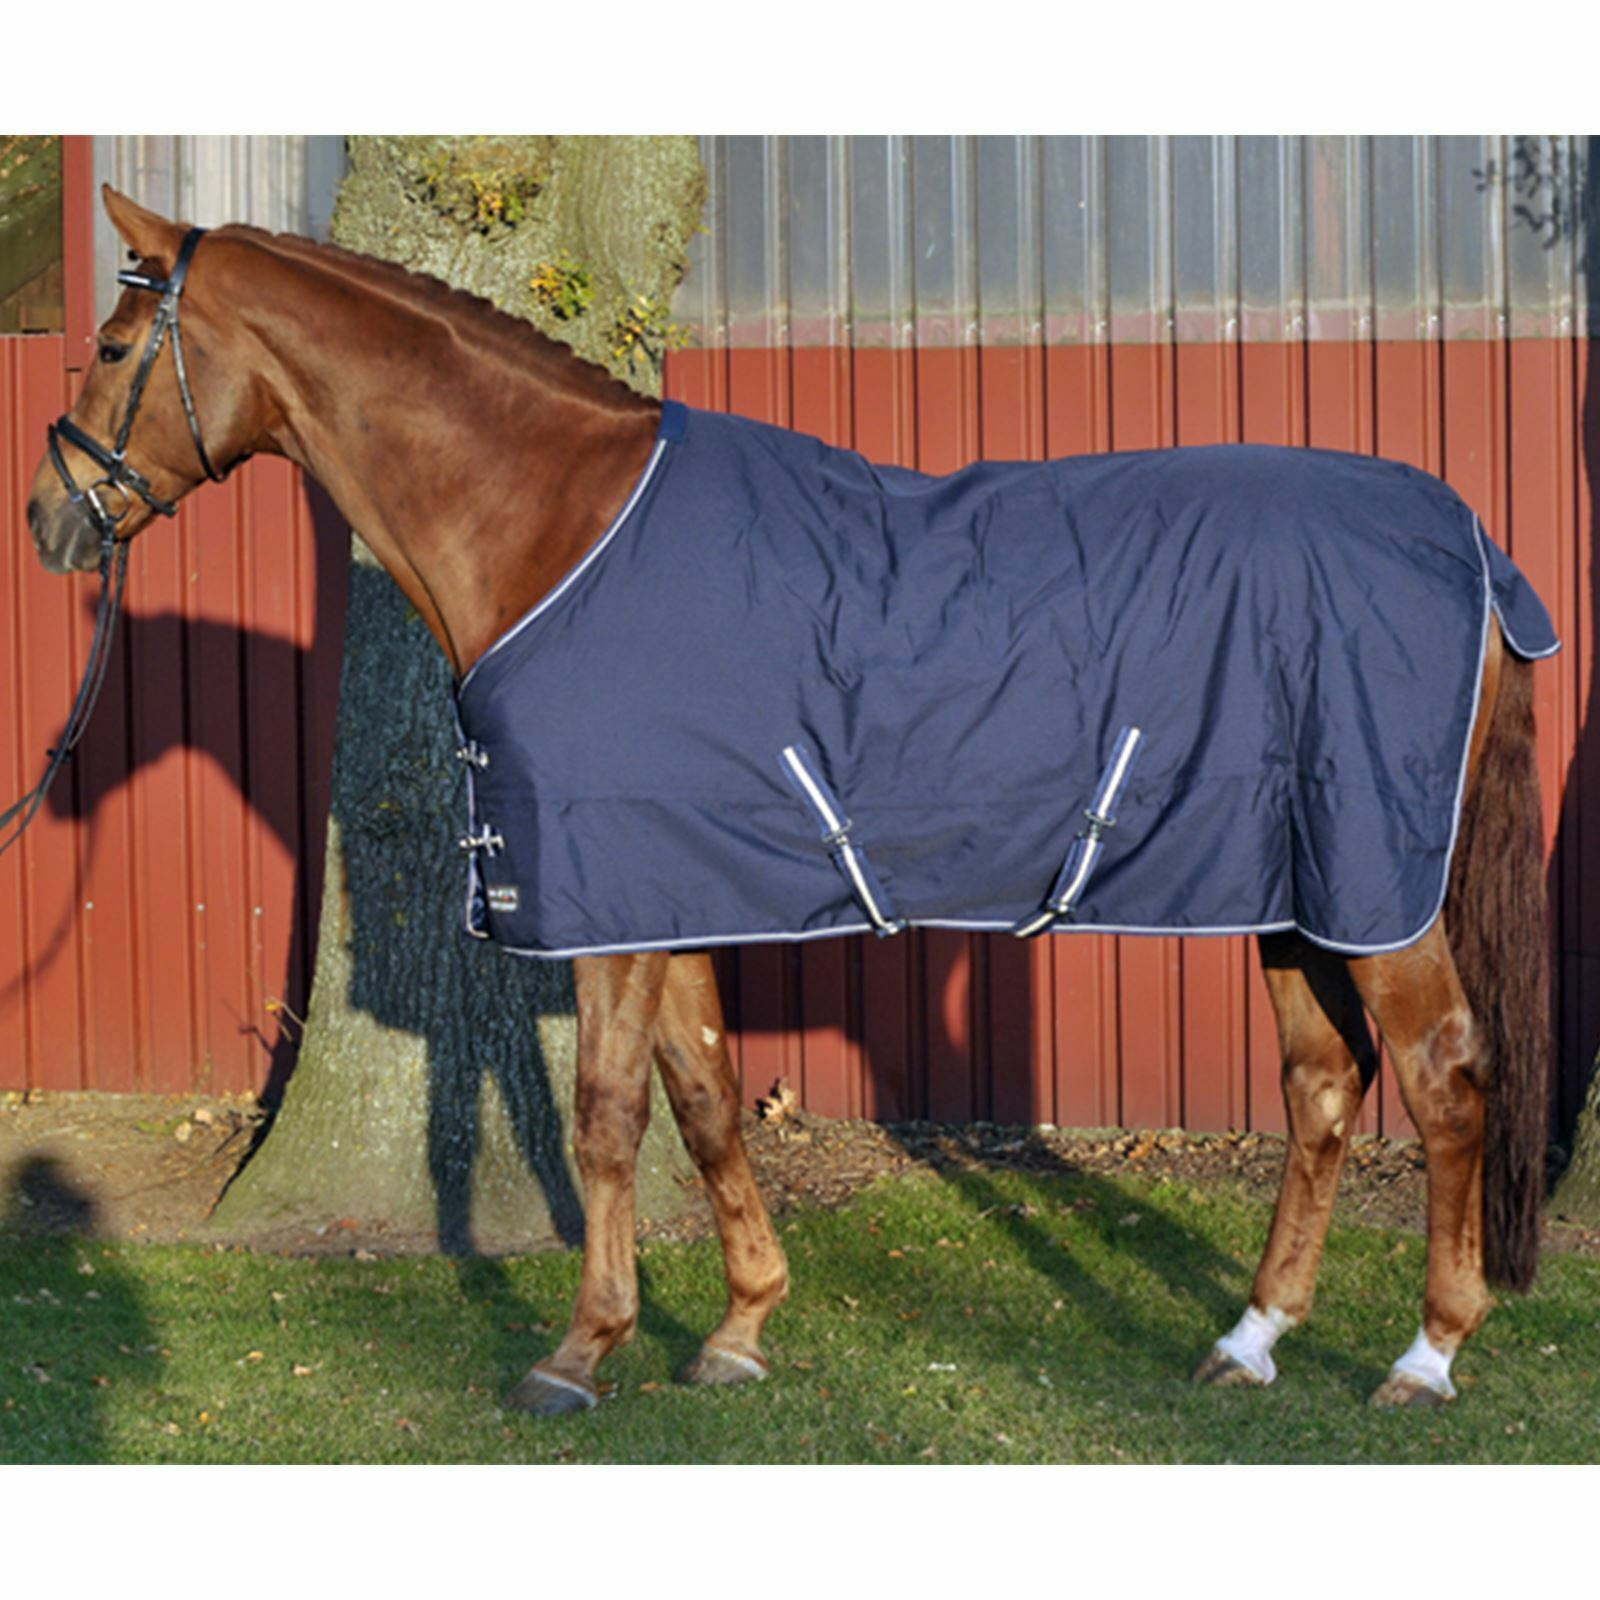 HKM Turnout Rug Economic With Fleece Lining Waterproof Waterproof Waterproof Horse Protection Blanket 7db40c